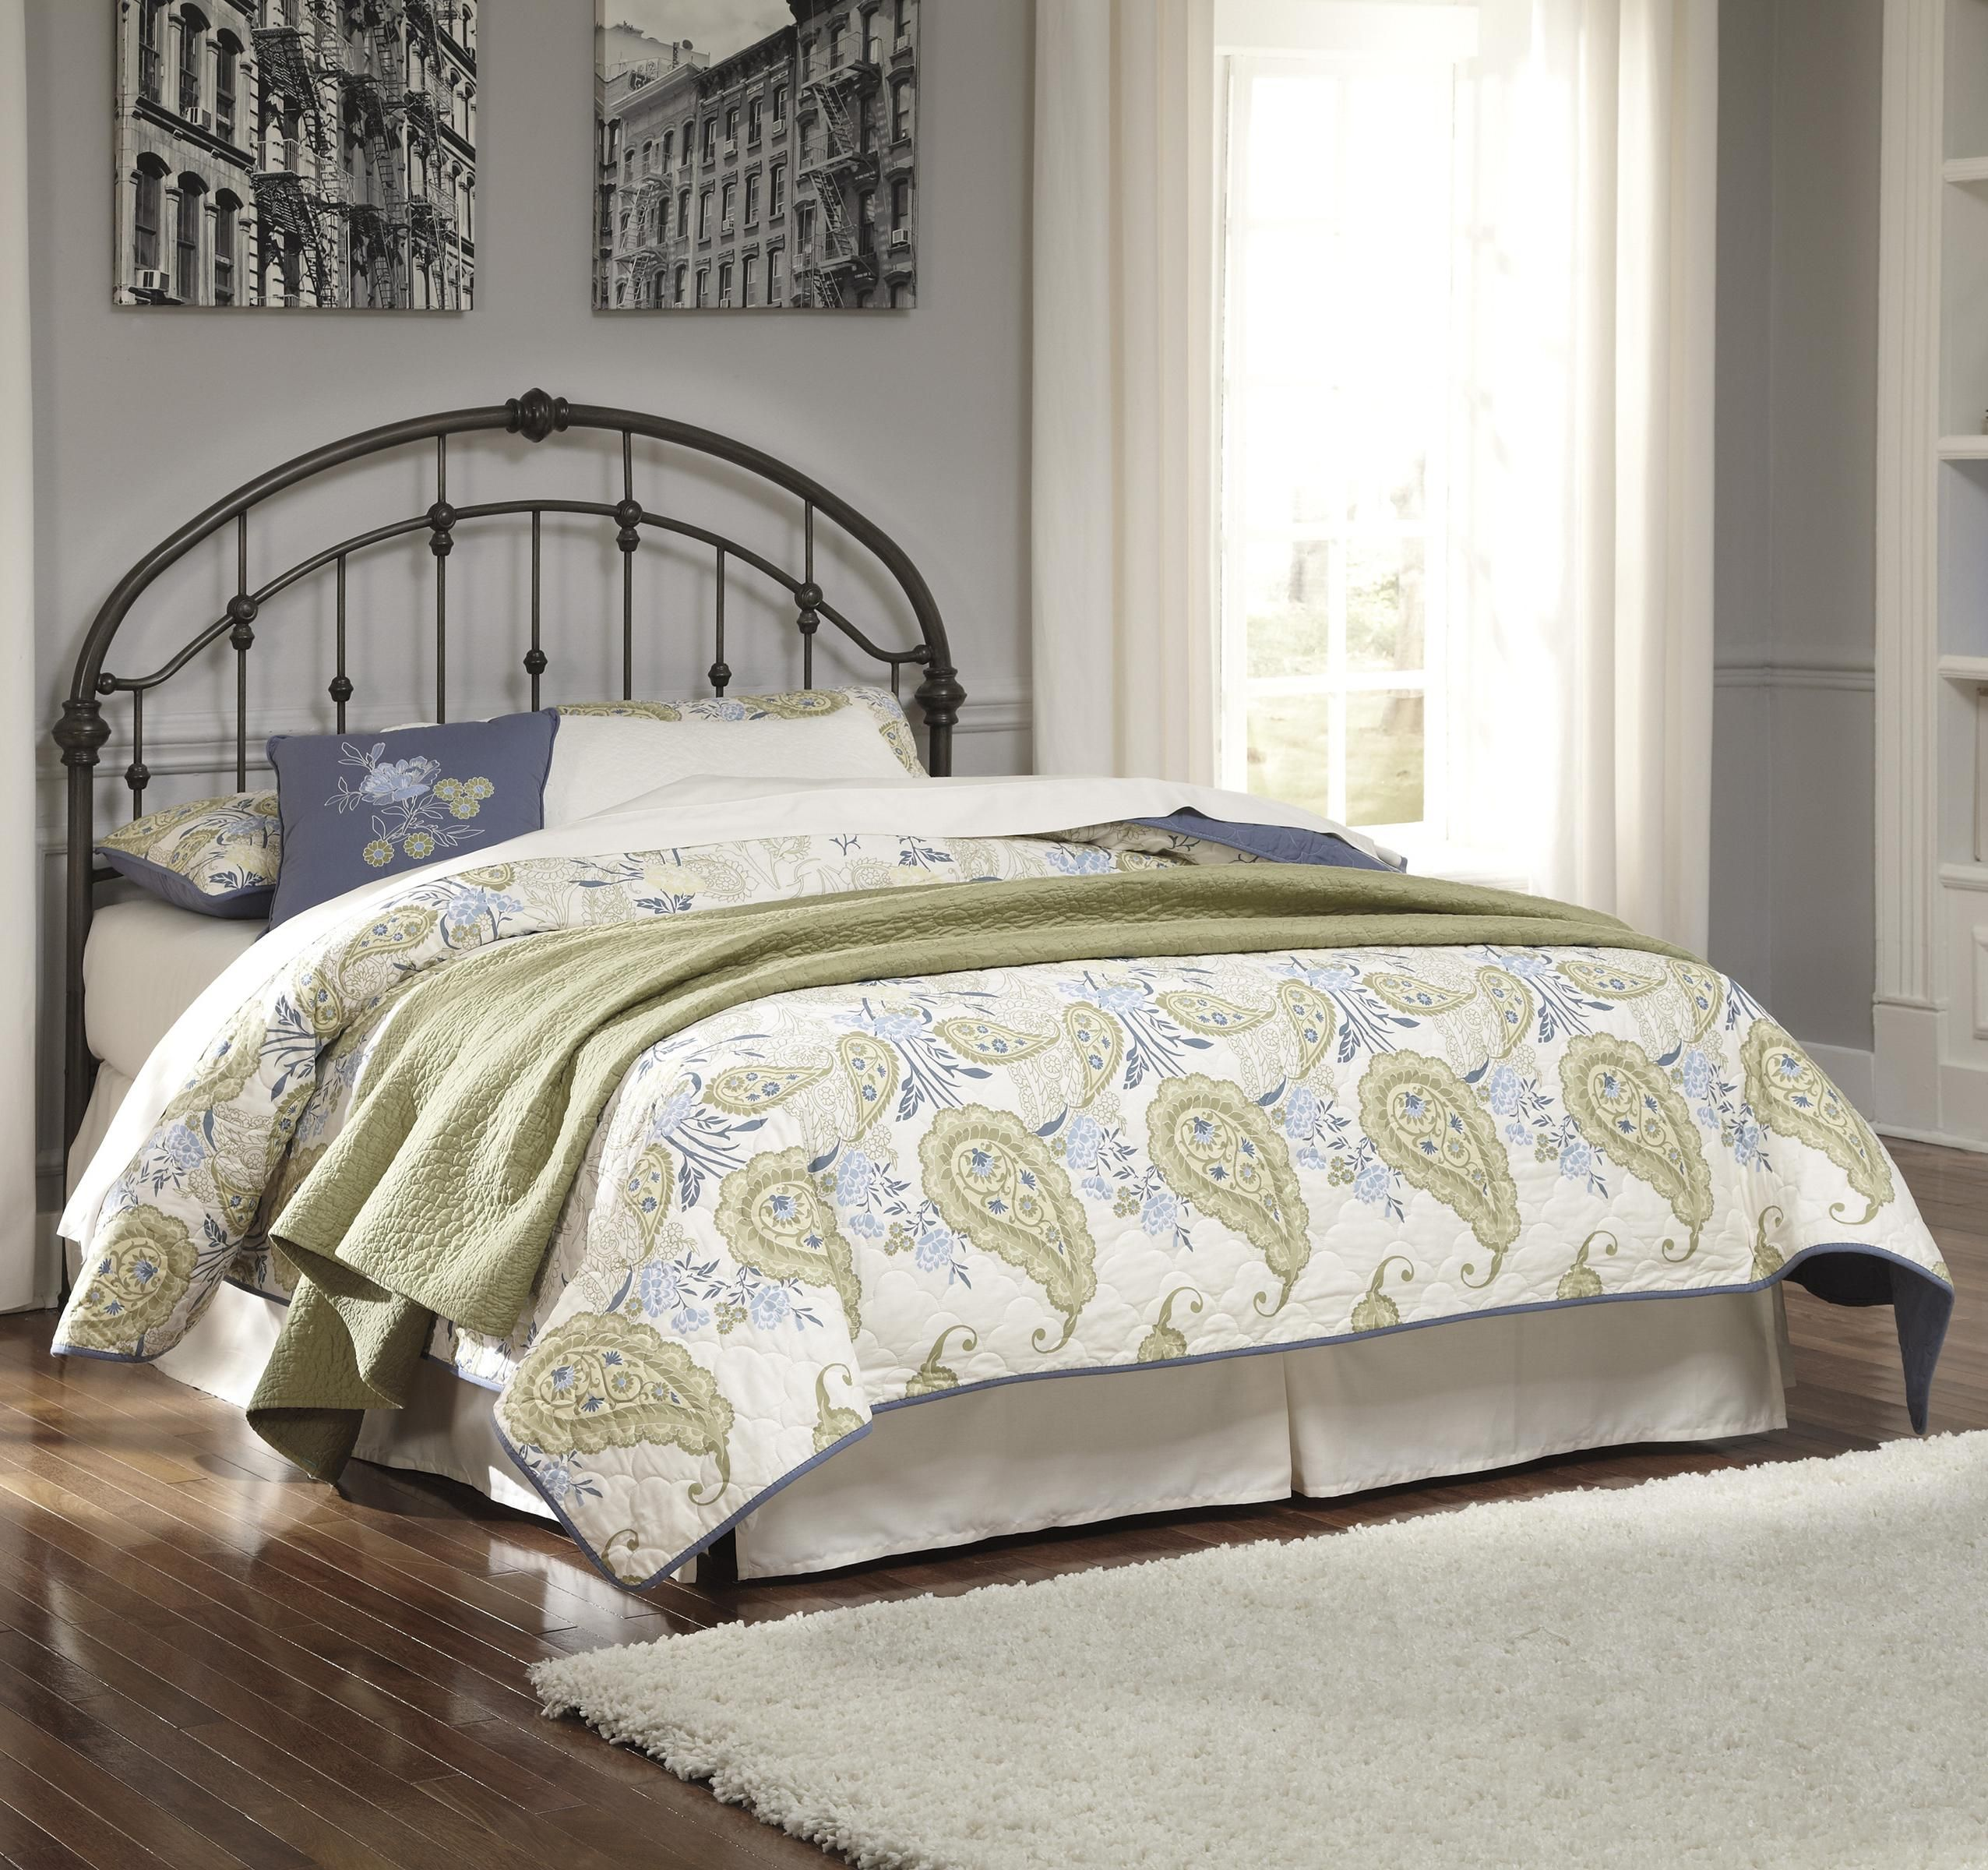 Teenage Bedroom Nashburg Queen Bed By Ashley Furniture At